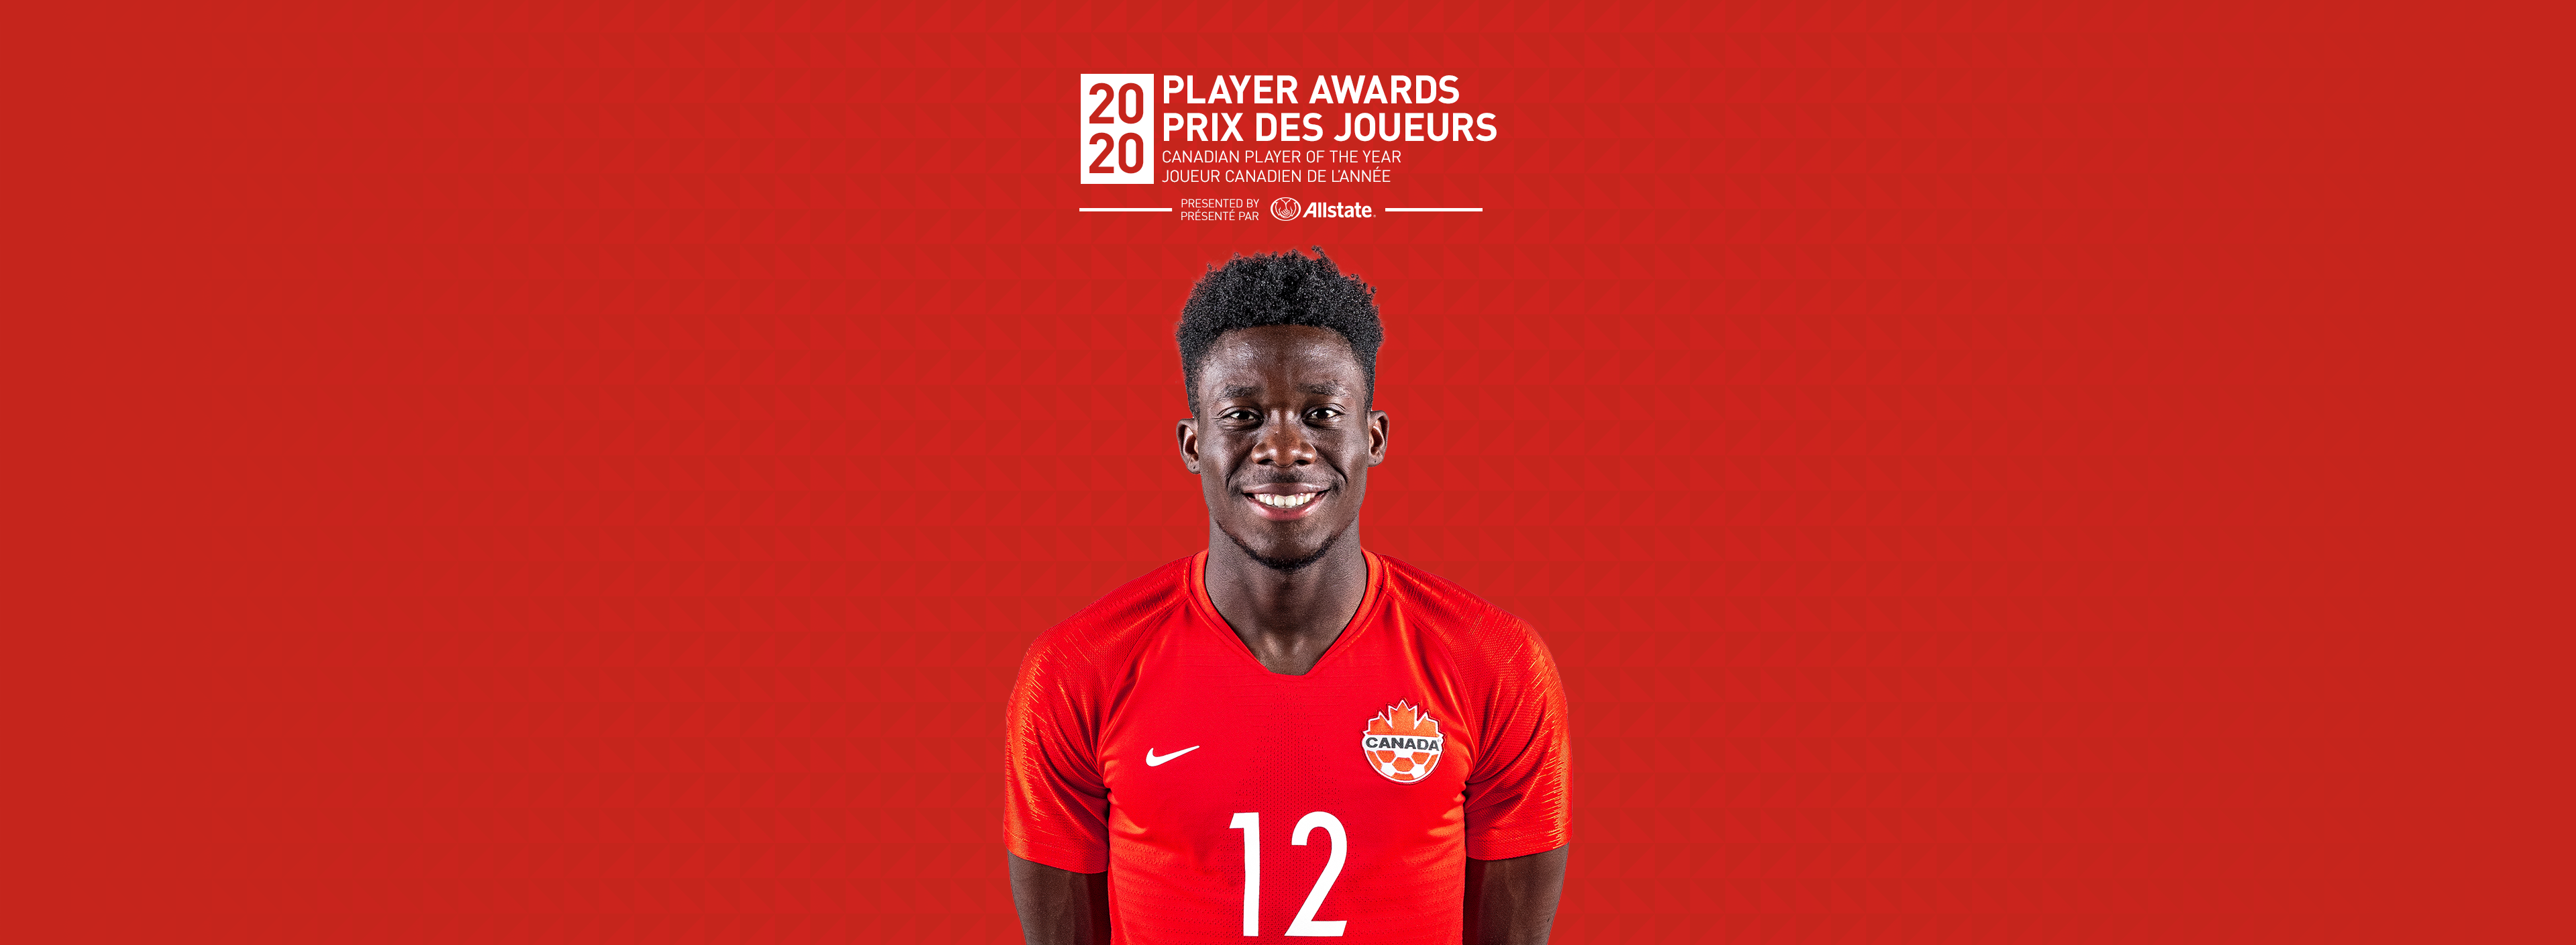 Player of the Year Alphonso Davies